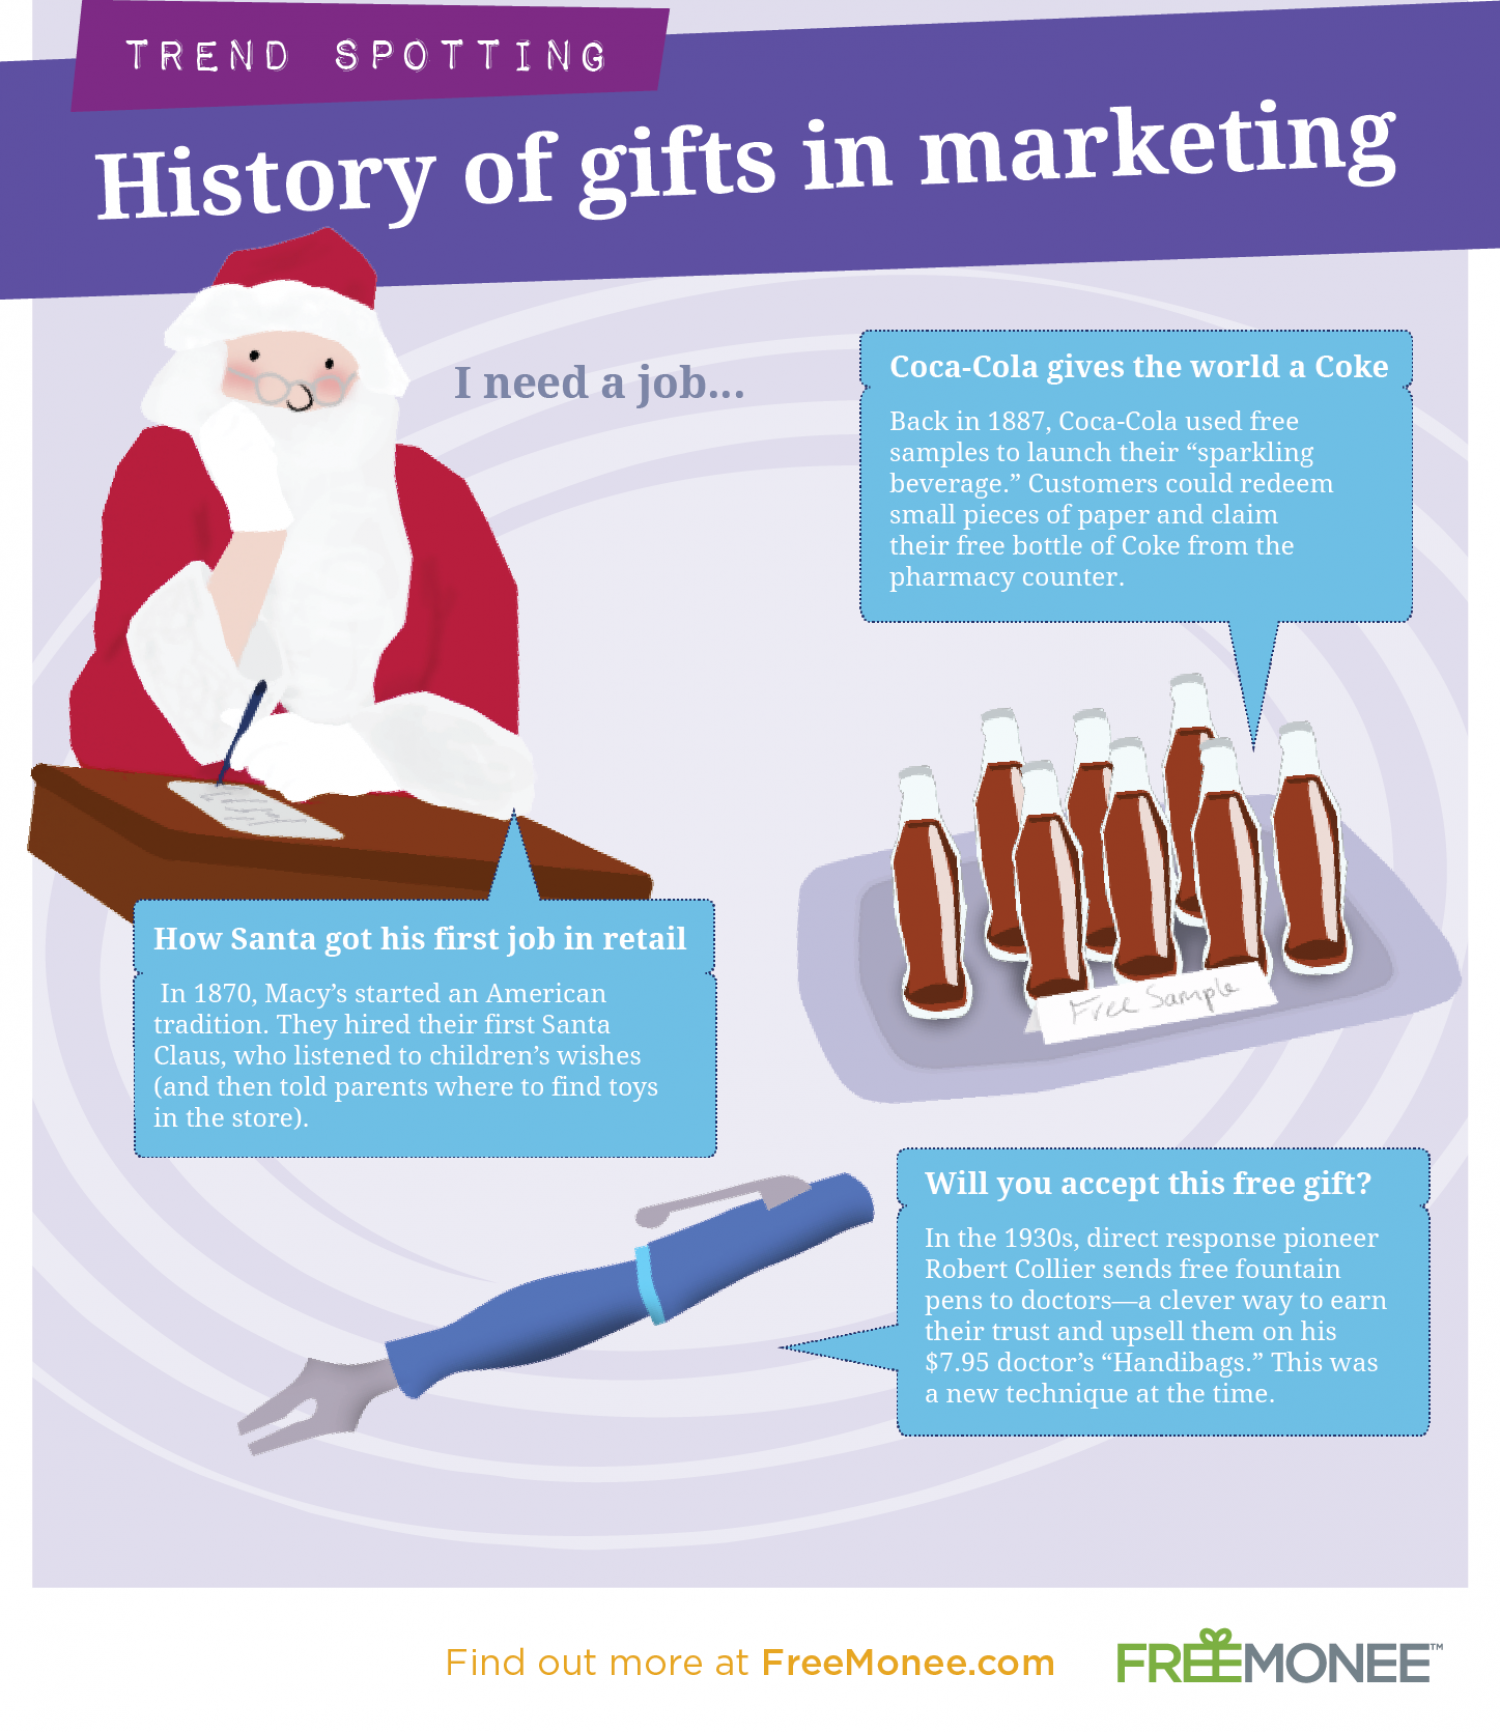 History of Gifts in Marketing Infographic